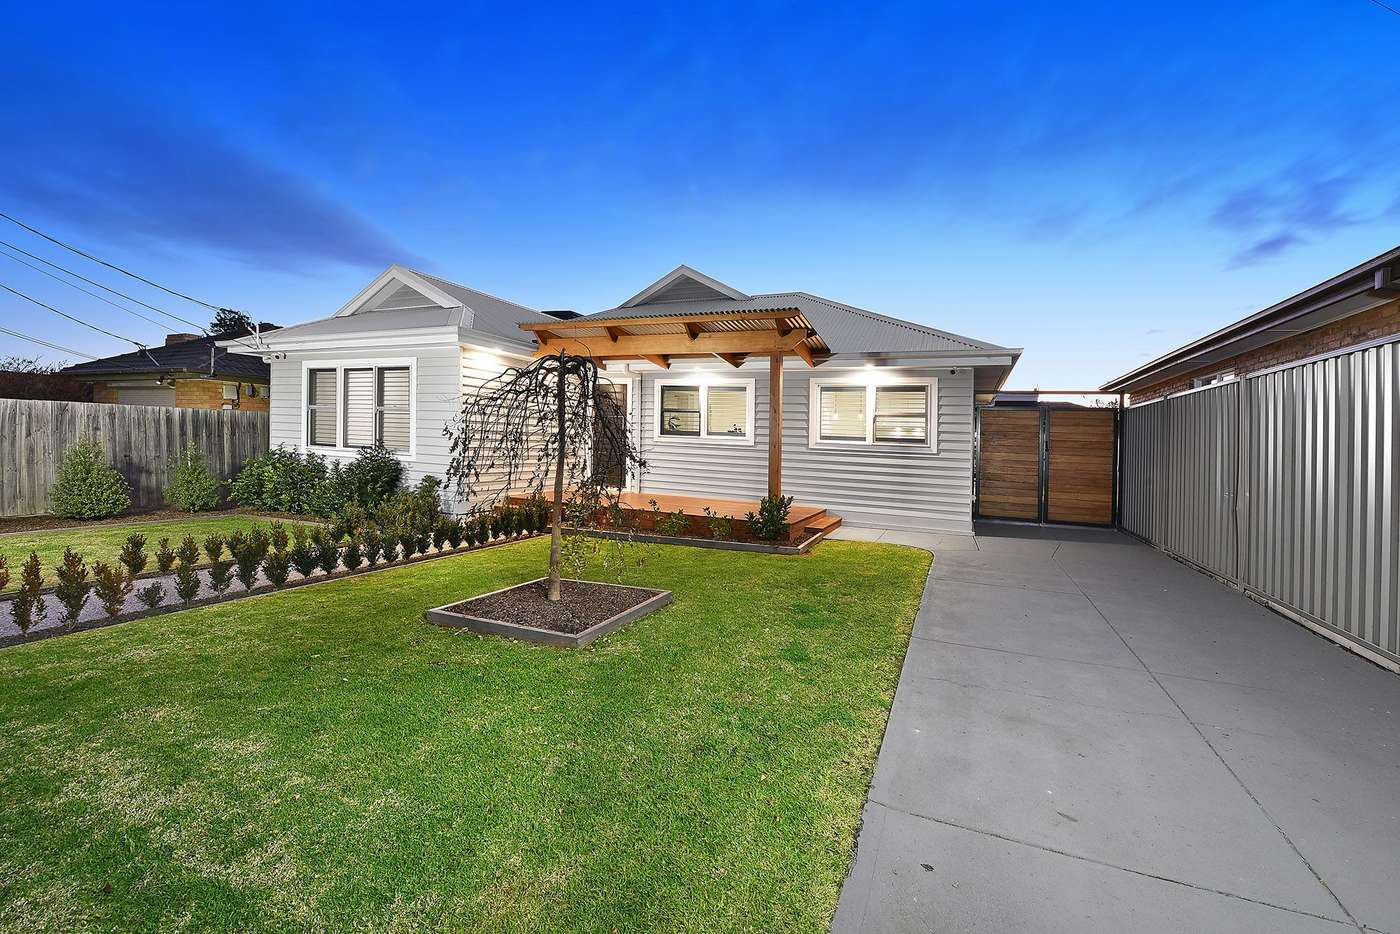 Main view of Homely house listing, 25 Ian Crescent, Airport West VIC 3042